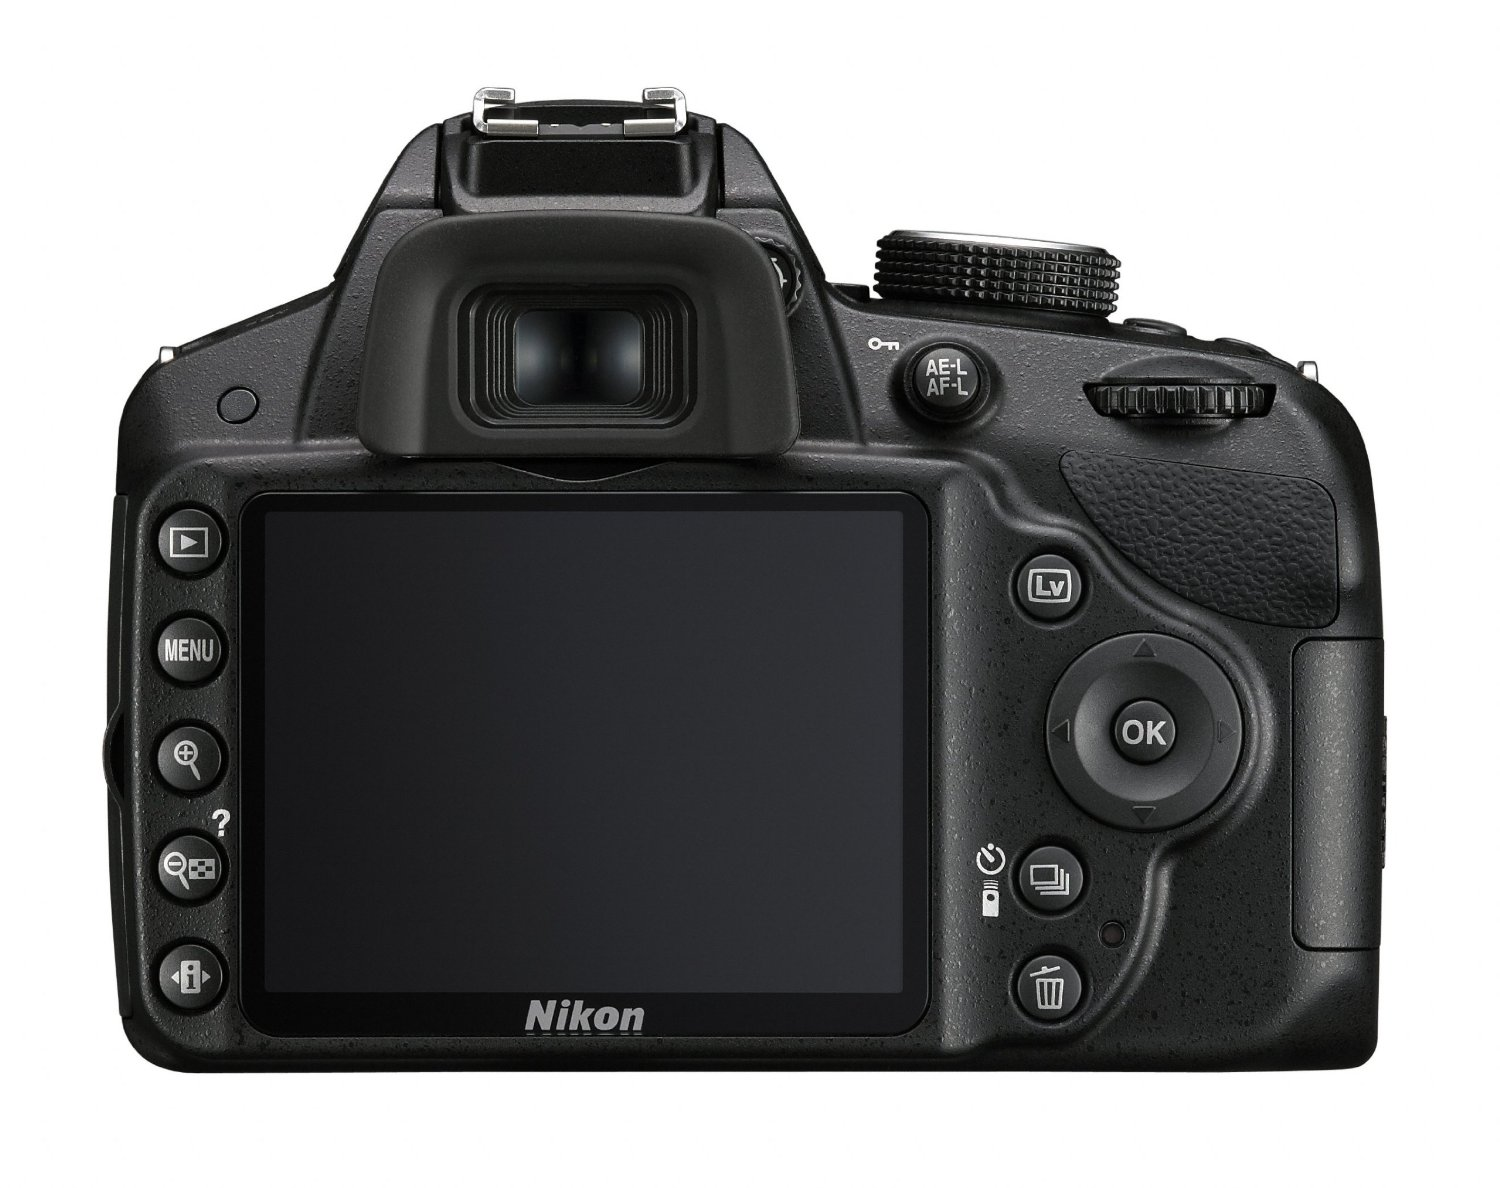 Nikon D3200 DSLR Camera with 18-55mm Lens price in Pakistan, Nikon ...